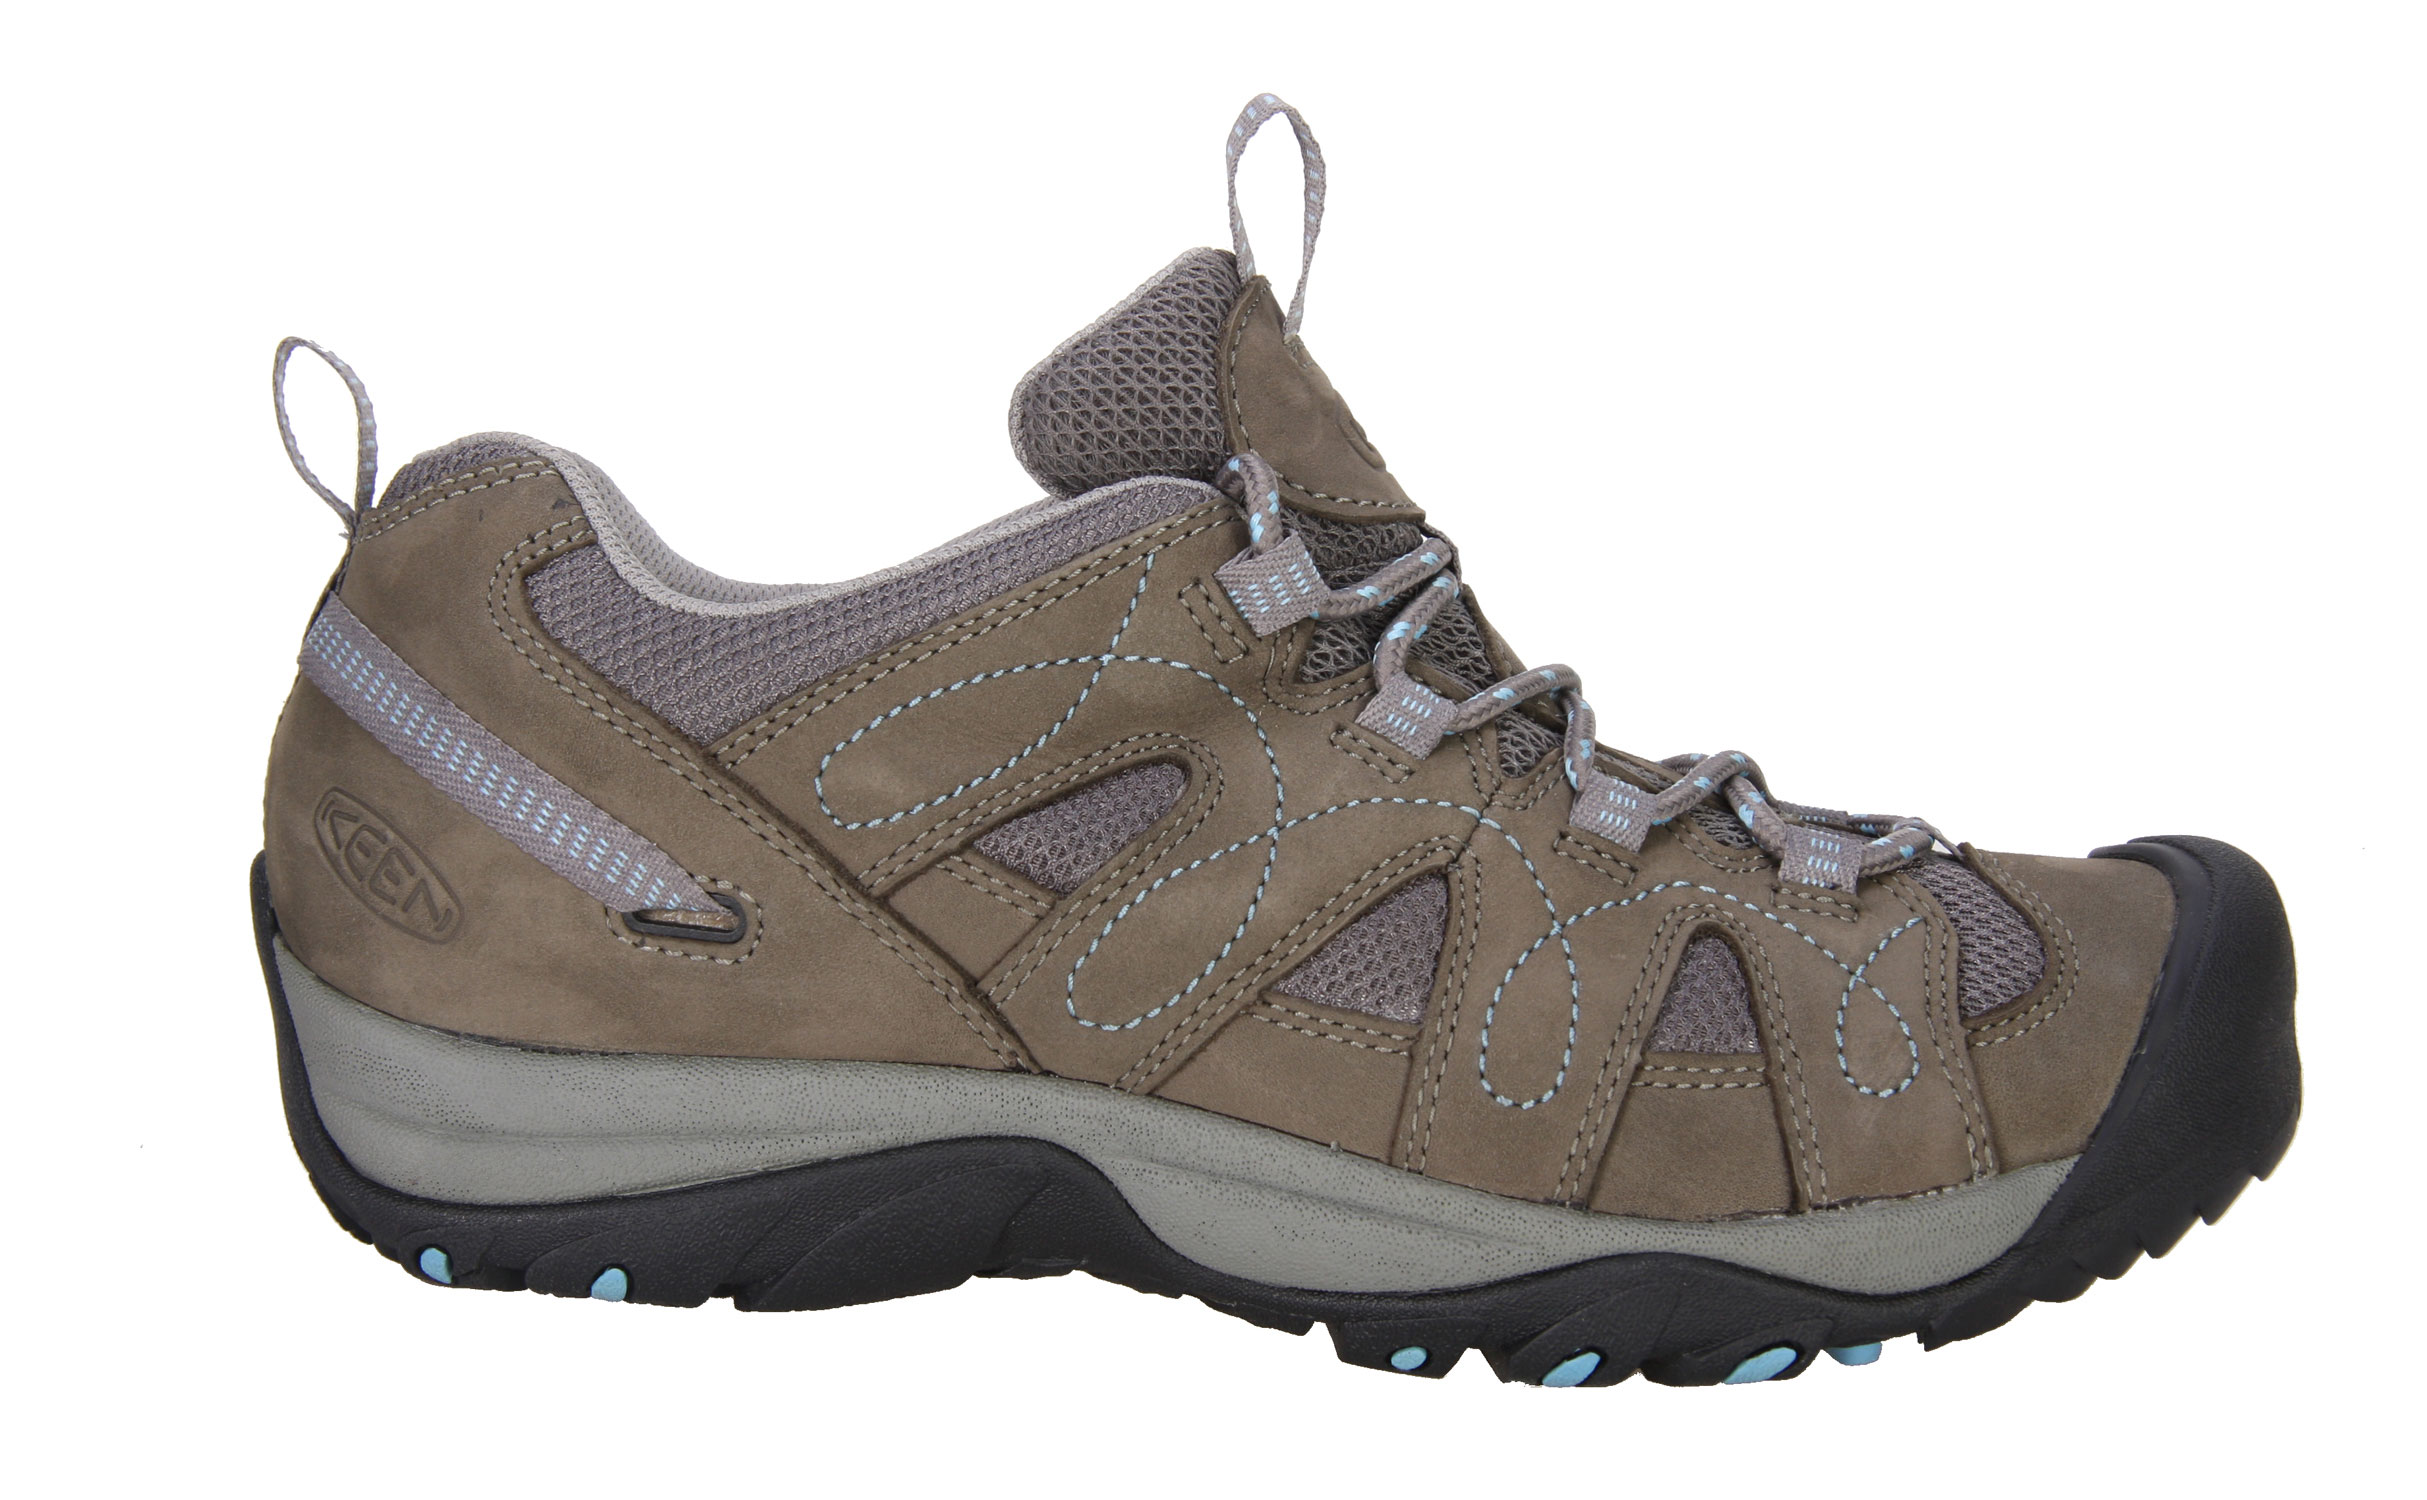 Camp and Hike For adventures in dry, warm climates, the breathable Shasta makes an ideal and affordable all-around shoe for exploring canyons, scrambling up sand dunes or just kicking around town in classic KEEN comfort. The low cut offers athletic performance in a lightweight and nimble package.Key Features of The Keen Shasta Low Women's Hiking Shoes: Leather with breathable mesh underlays Multi direction lug pattern for increased traction Non-marking rubber outsole Women's specific fit Metatomical Footbed Keen Protect - KEEN Patented Toe Protection where the shoe outsoles wrap up and over the toes for ultimate protection Weight: 13.5 OZ / 383 GRAMS WOMEN Fit Tip: We find this style runs about a 1/2 size small Upper: Leather Rubber: Non-marking rubber outsole Activities: Hiking Type: Shoes, Lace Up - $57.95